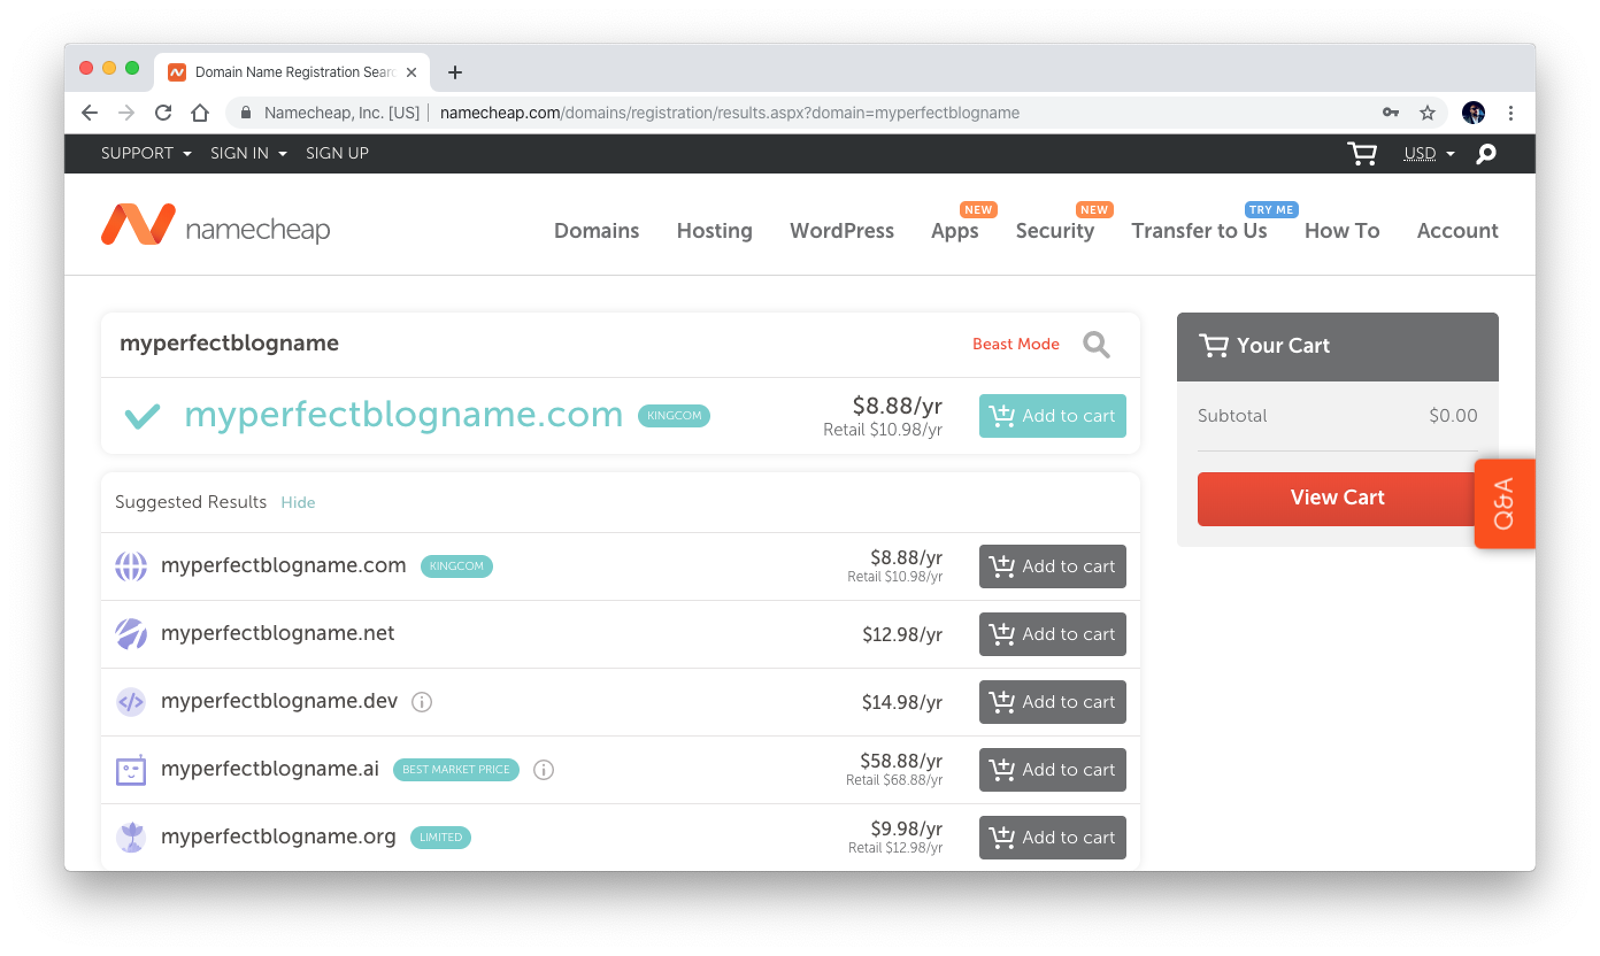 Domain Name Registration with Namecheap